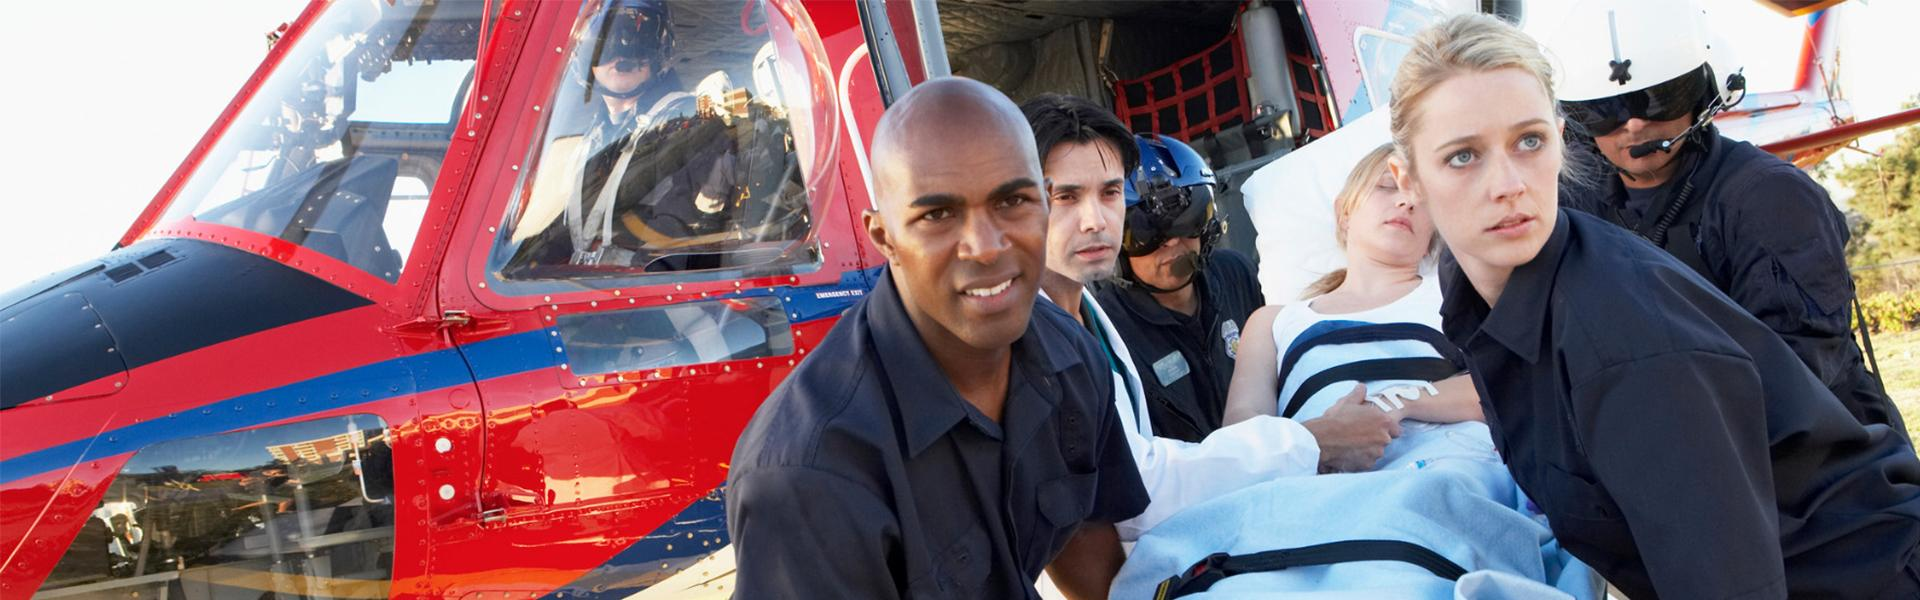 Emergency Technicians rescue patience from helicopter